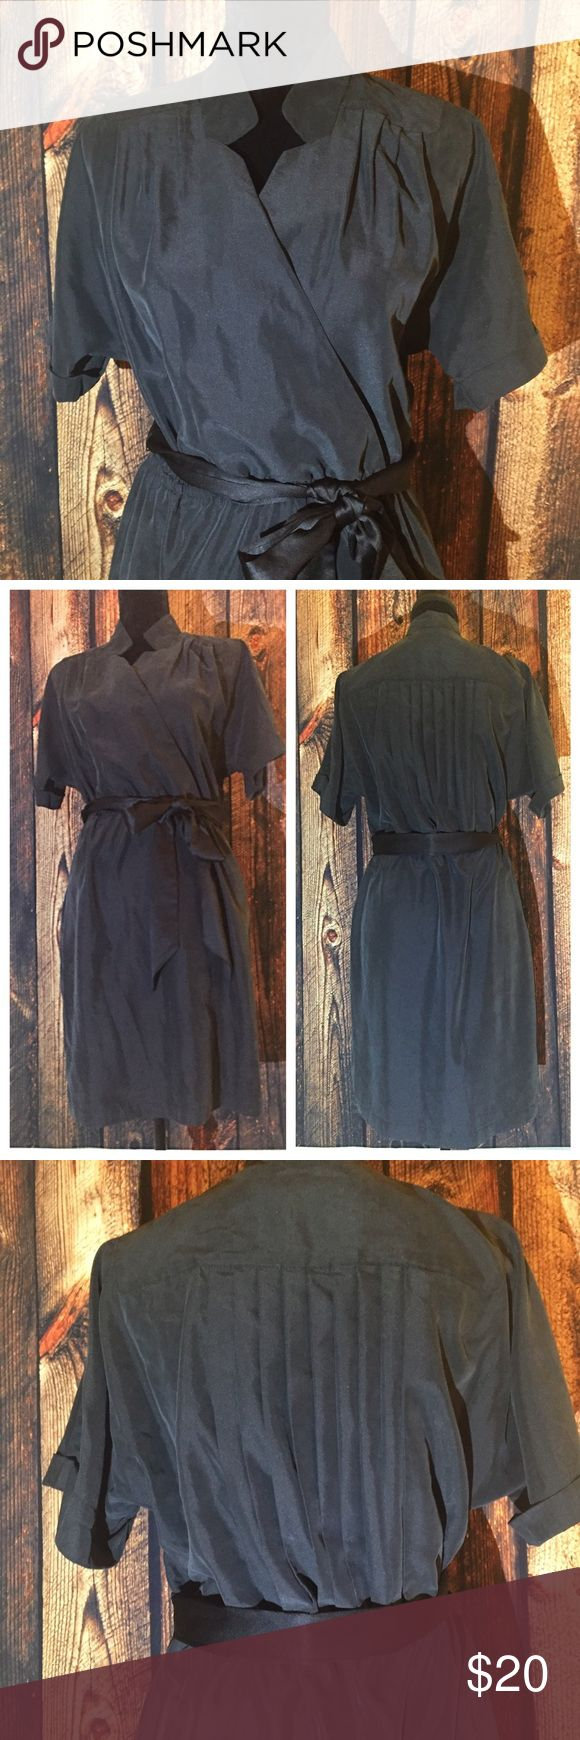 LOFT Dress with Pleated Back His dress has tons of amazing detail. The fabric is extremely soft: modal/poly blend. Belt is black, dress is very dark gray. Pleated back. No trades. LOFT Dresses